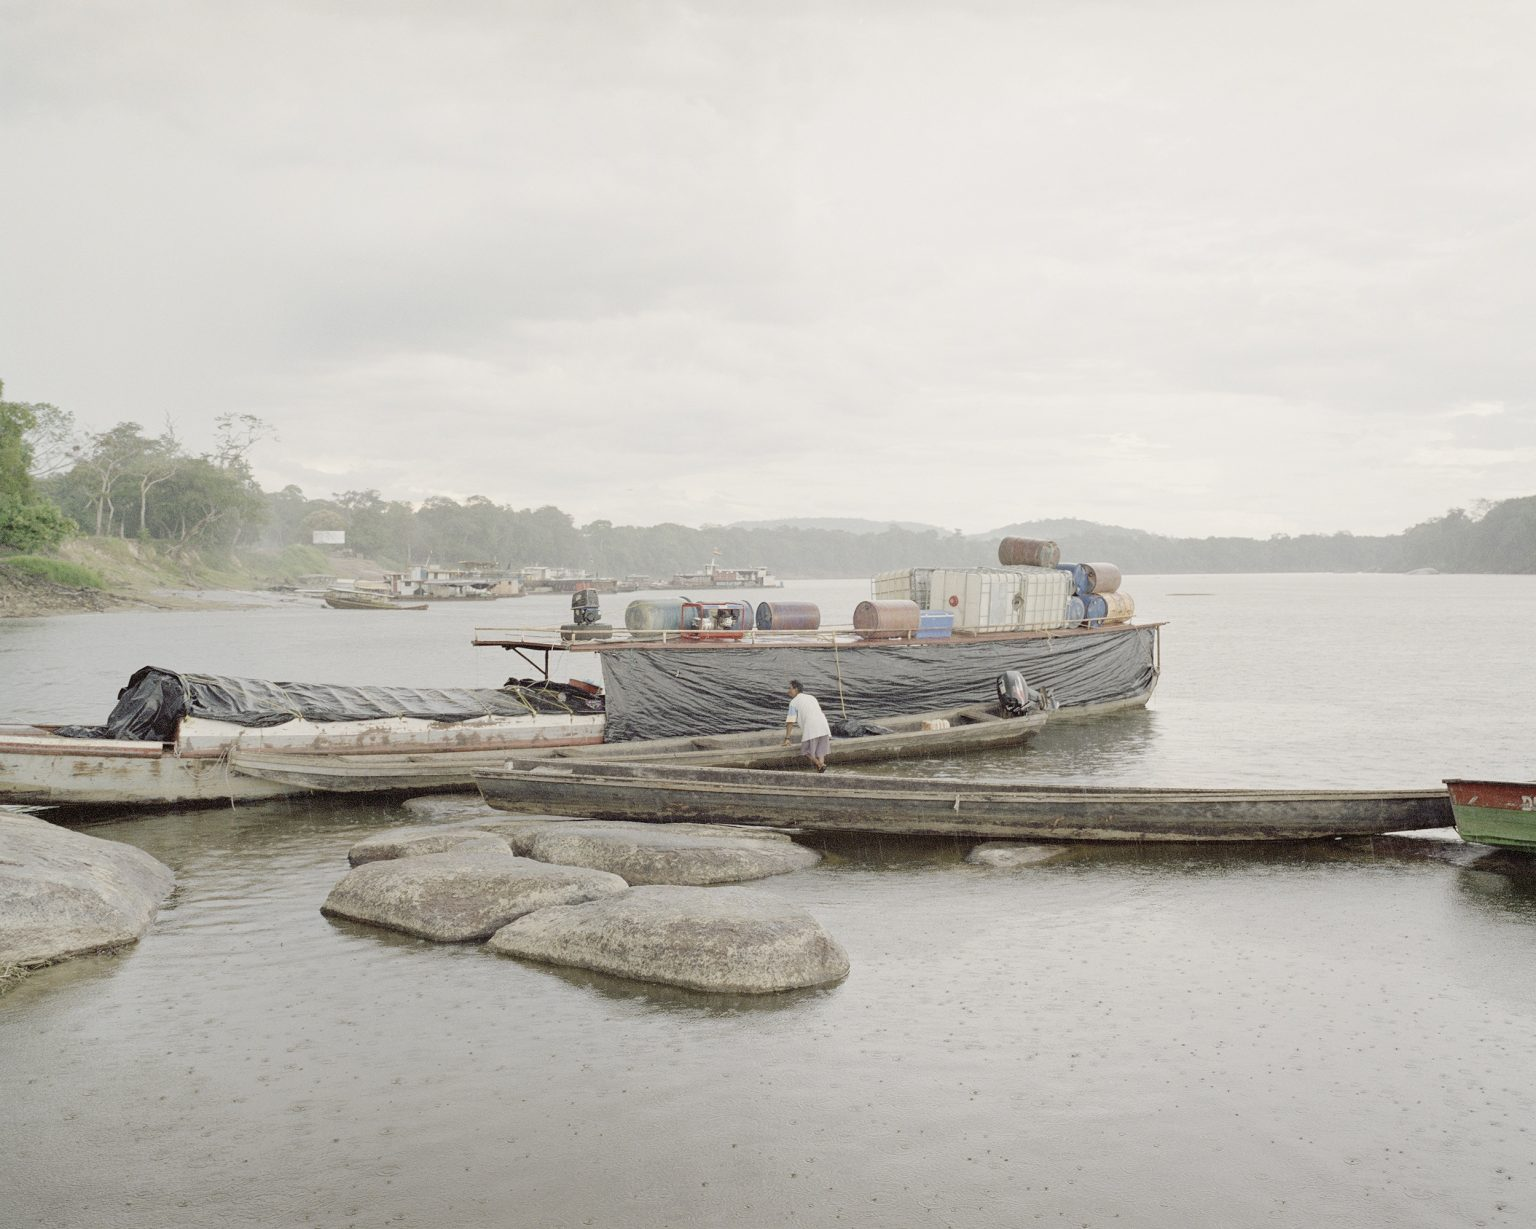 A boat on the Orinoco river along the border with Colombia, here the smuggling is widespread mainly with gasoline and food.